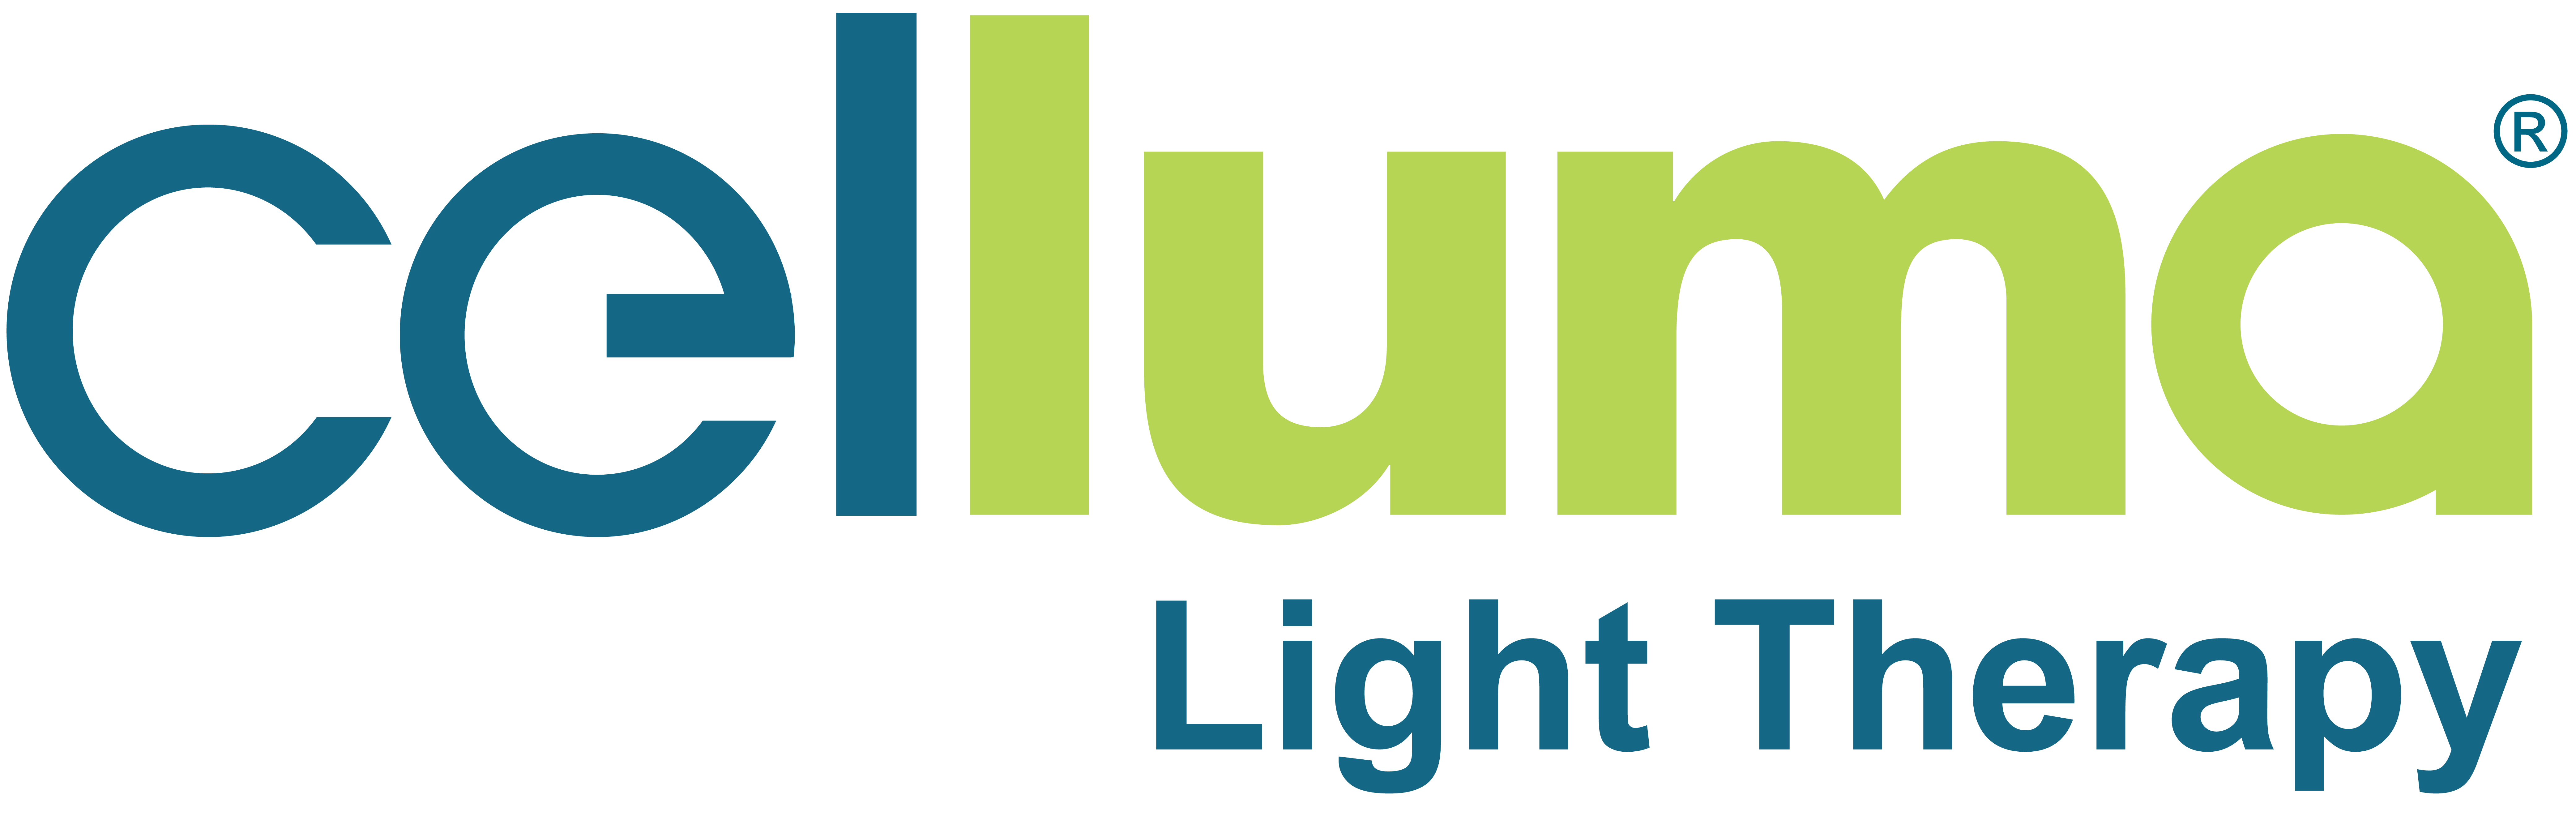 Celluma Logo LightTherapy High Res